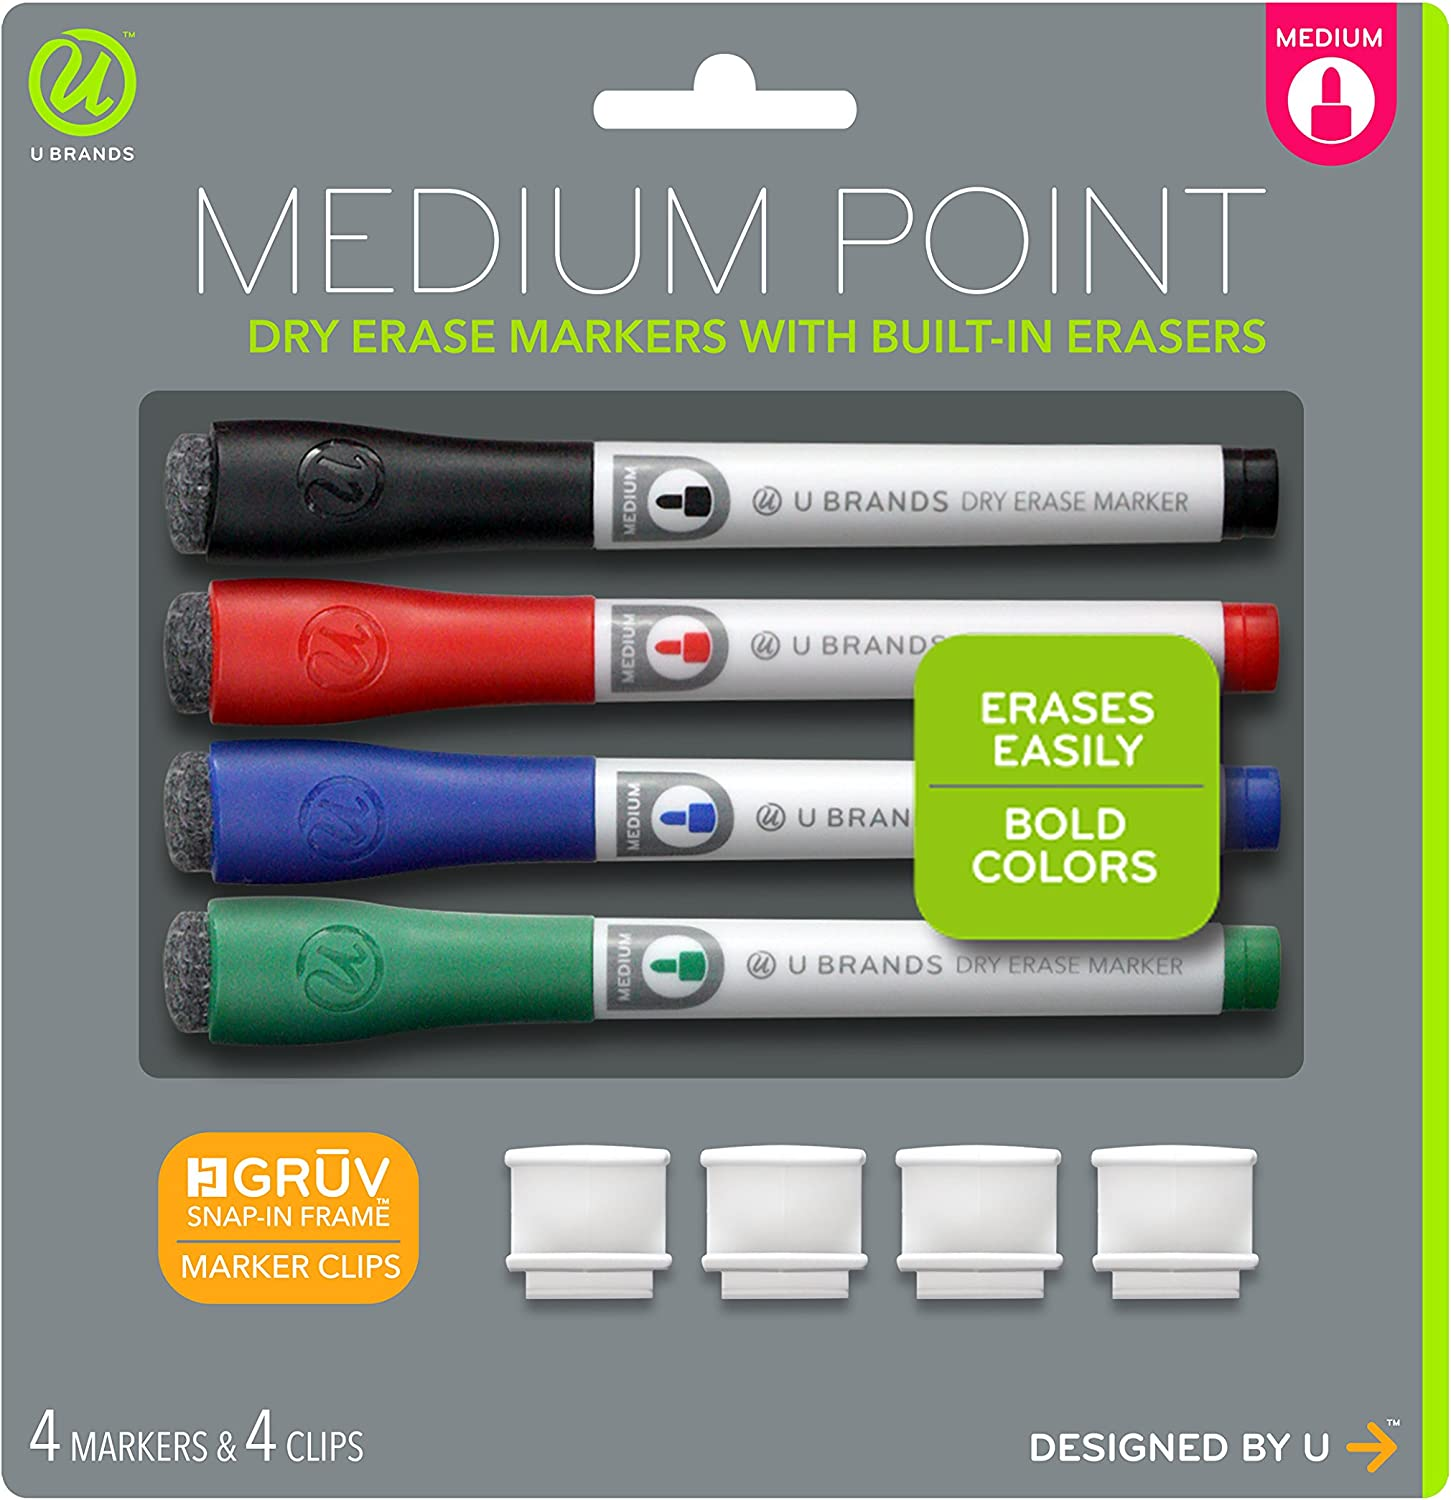 U Brands Low Odor Dry Erase Markers With Erasers, Medium Point, Assorted Classic Colors, With Gruv Marker Clips, 4-Count